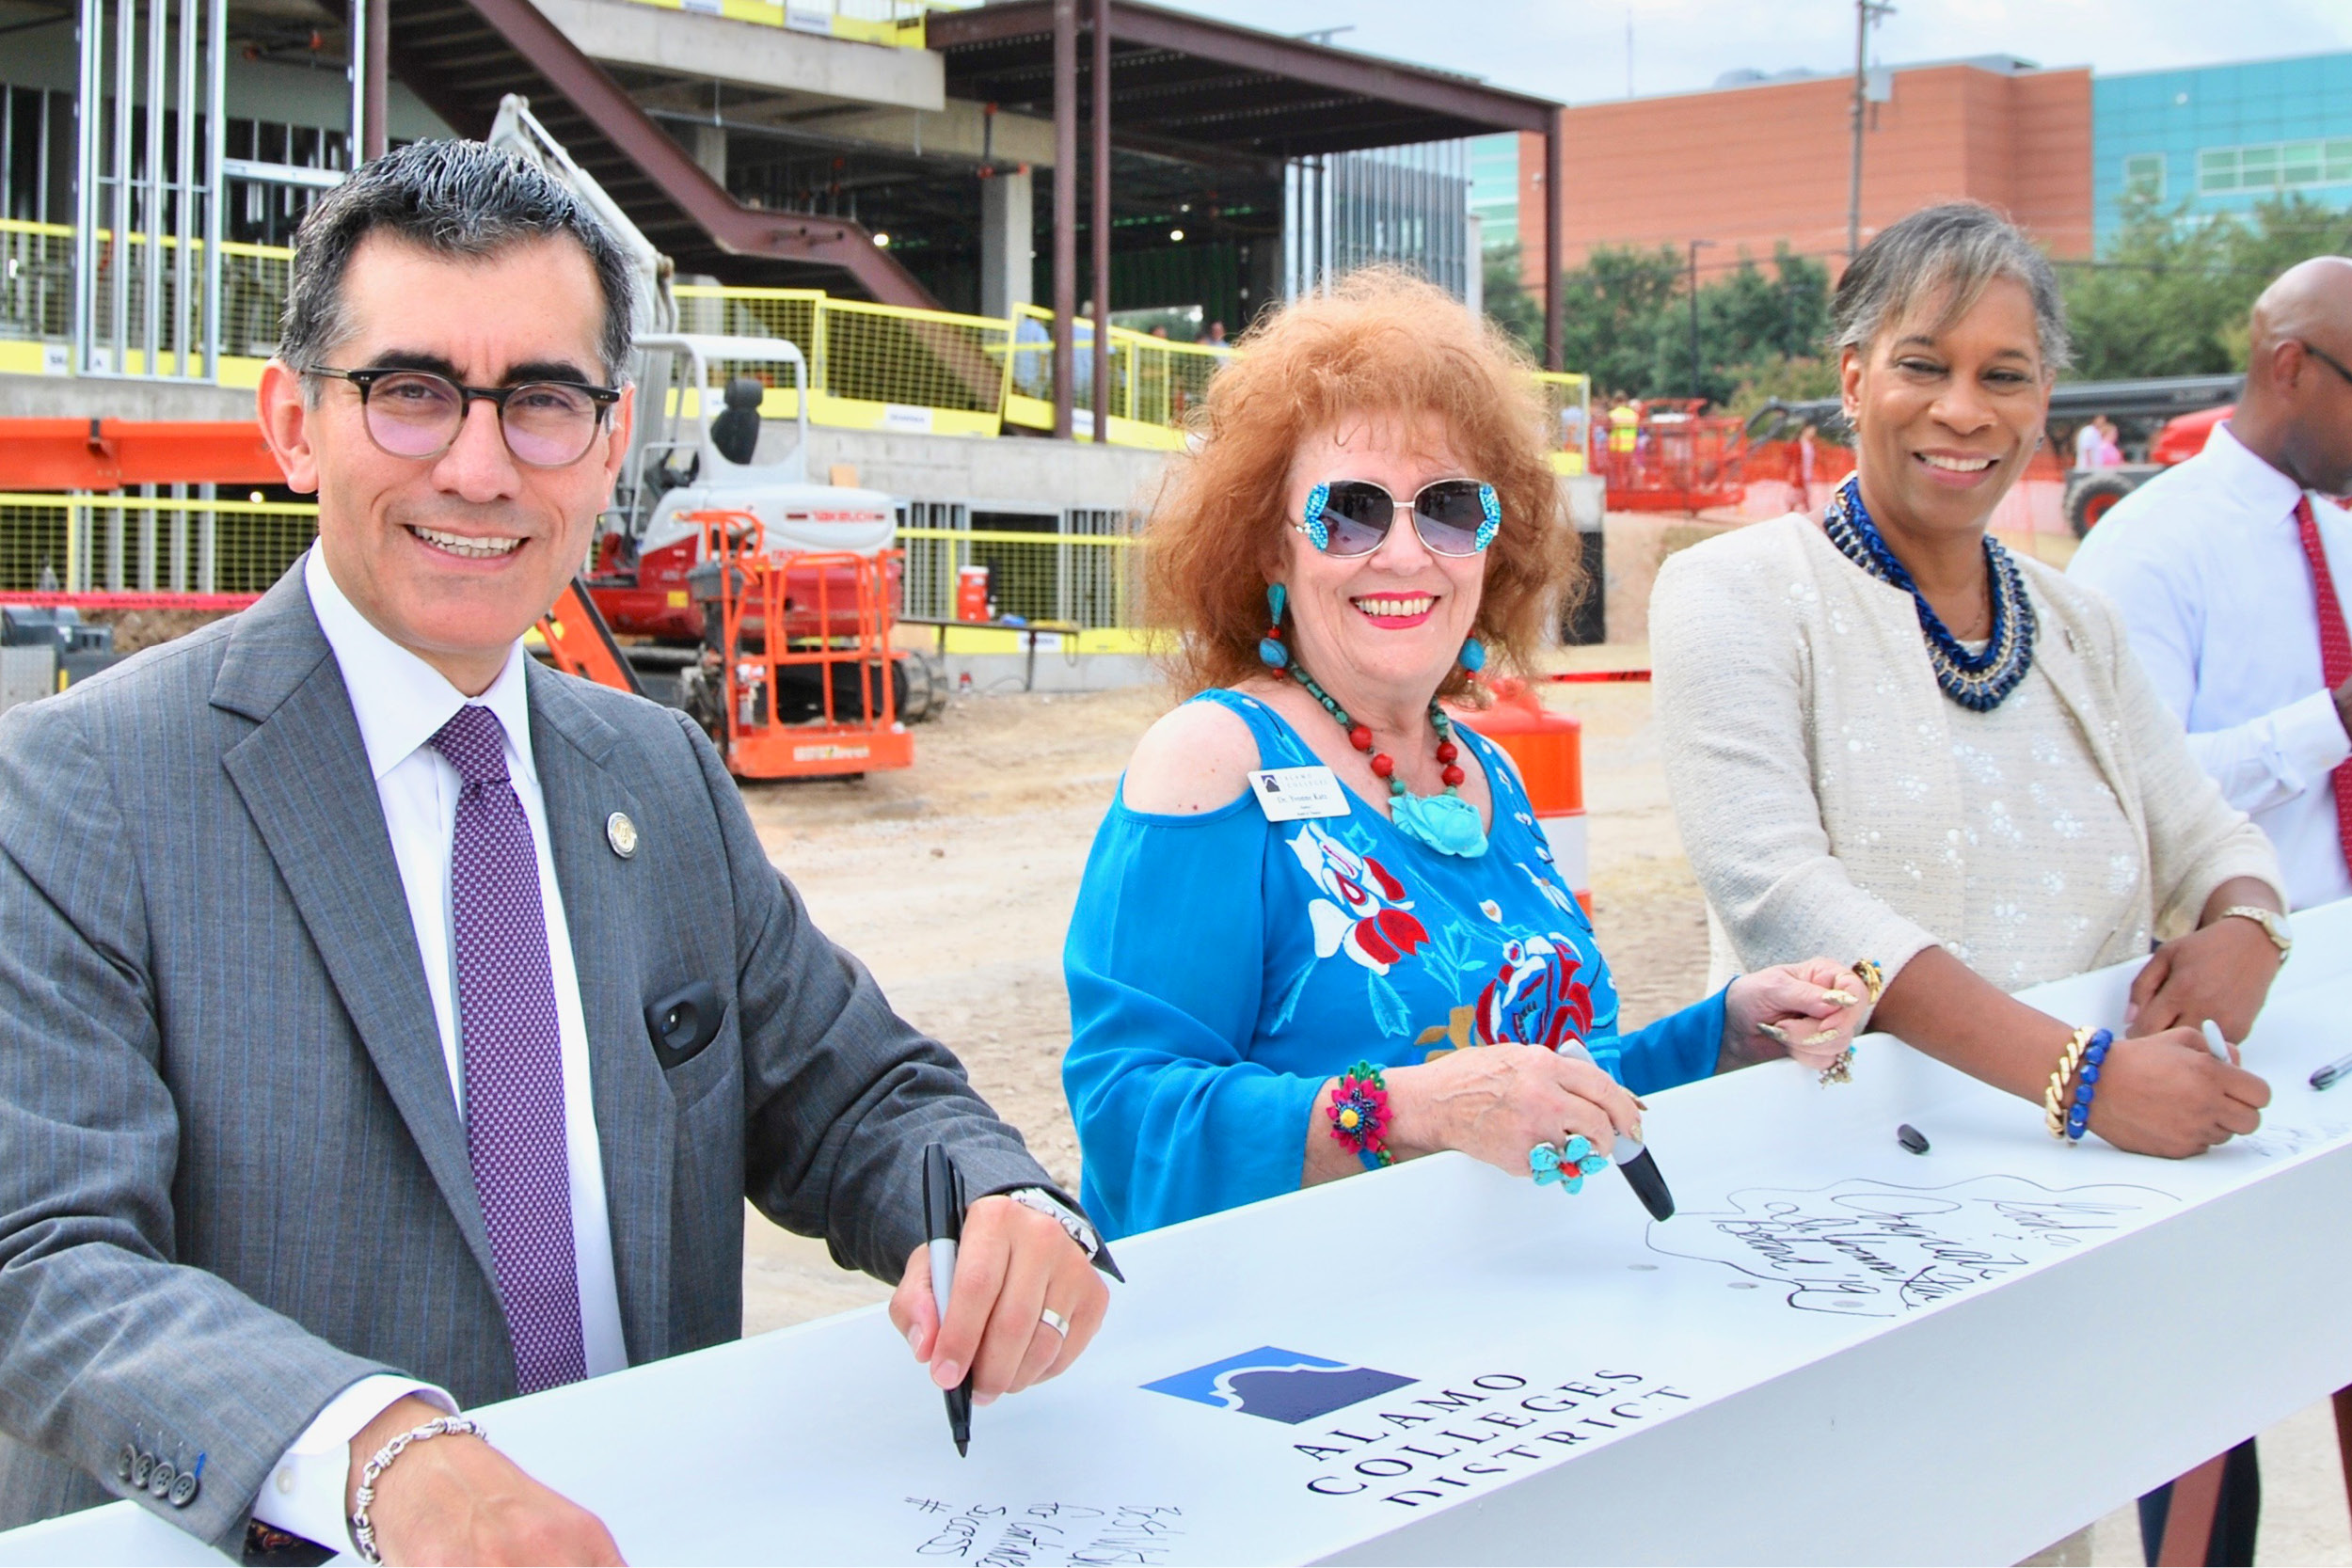 Chancellor Flores, Trustee Katz, and Dr. Loston signing a building beam outside